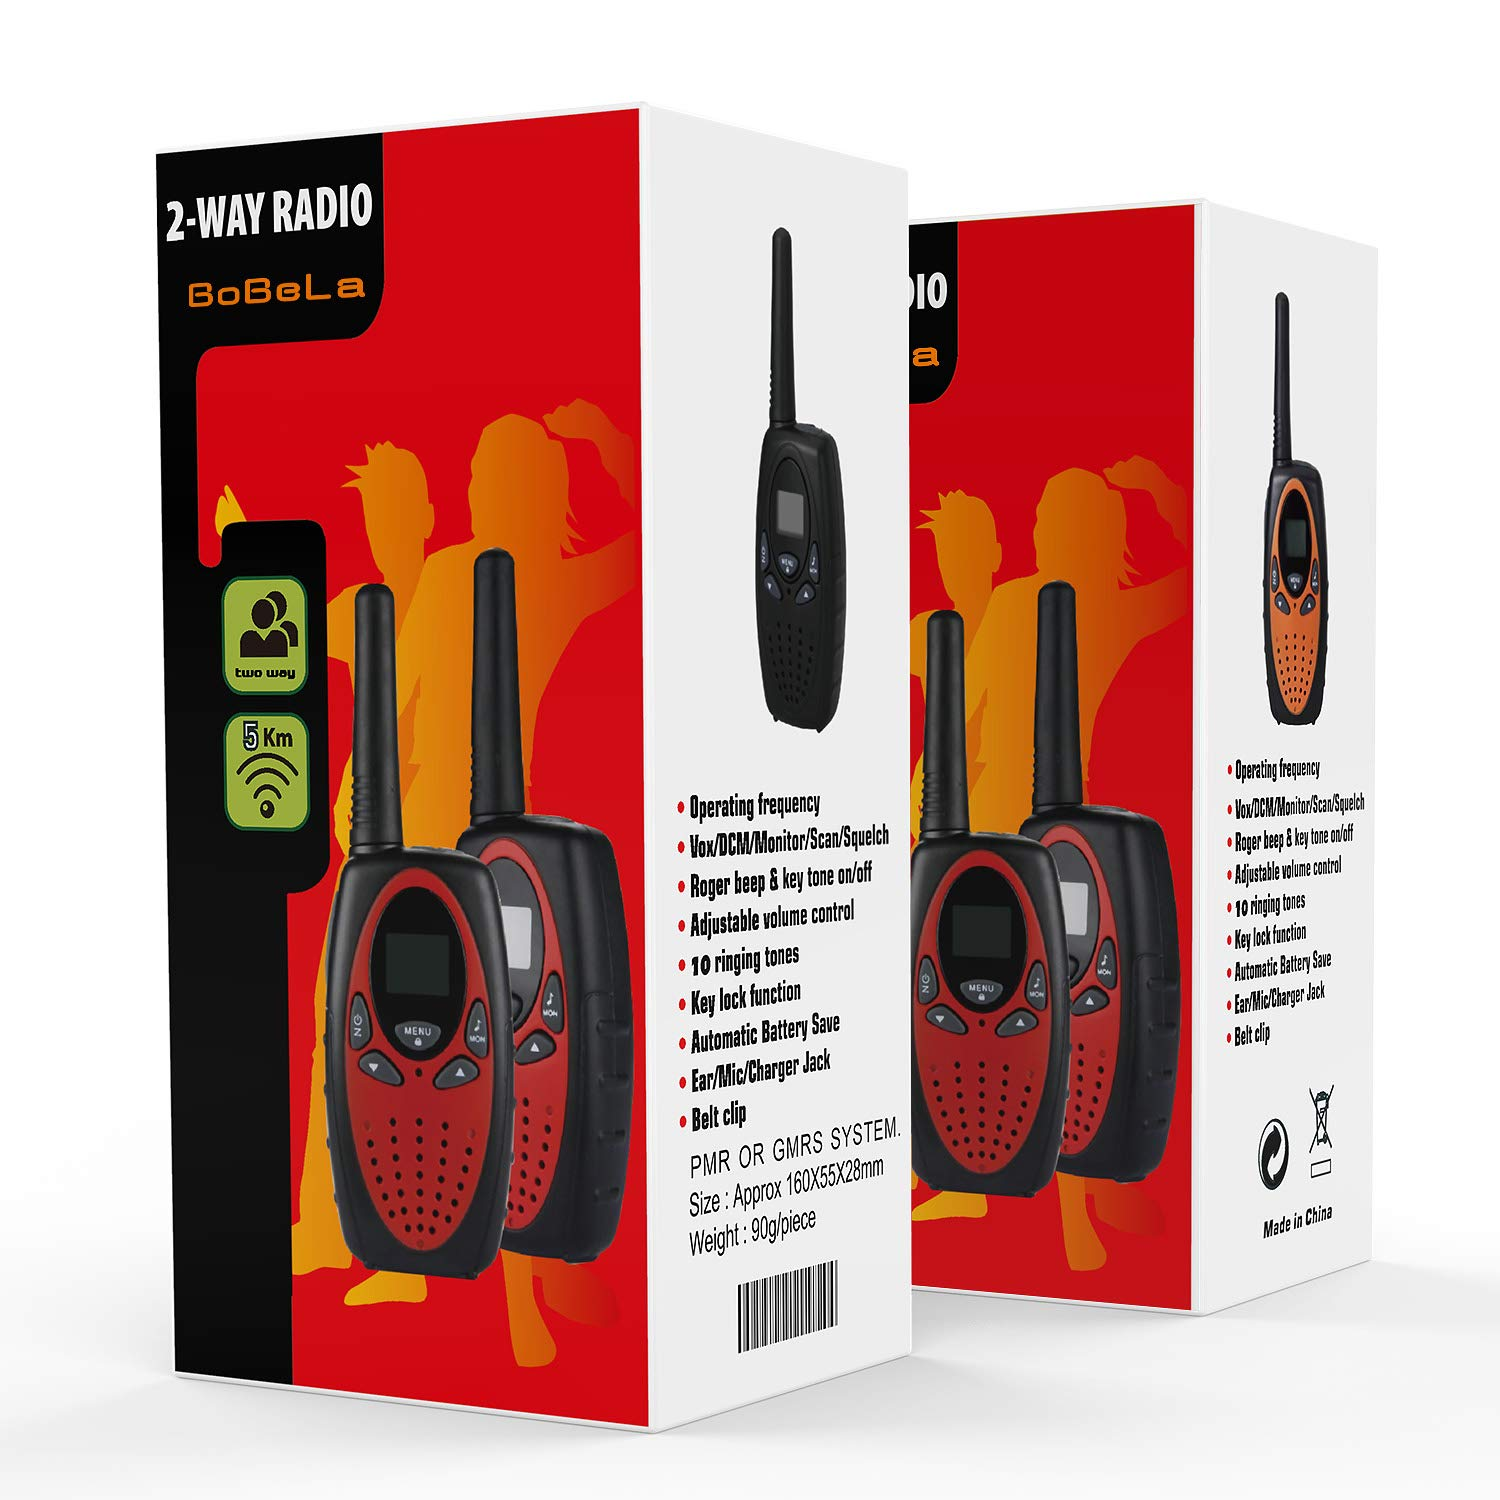 Bobela Kids walkie talkies 4 Pack, Funny and Novelty Birthday Gifts for 3,4,5,6,7,8,9,10,11 Years Old Boy and Girls,Easter Gift, Simple Button and Easy to Use in Football Party(M880 Red) by Bobela (Image #8)